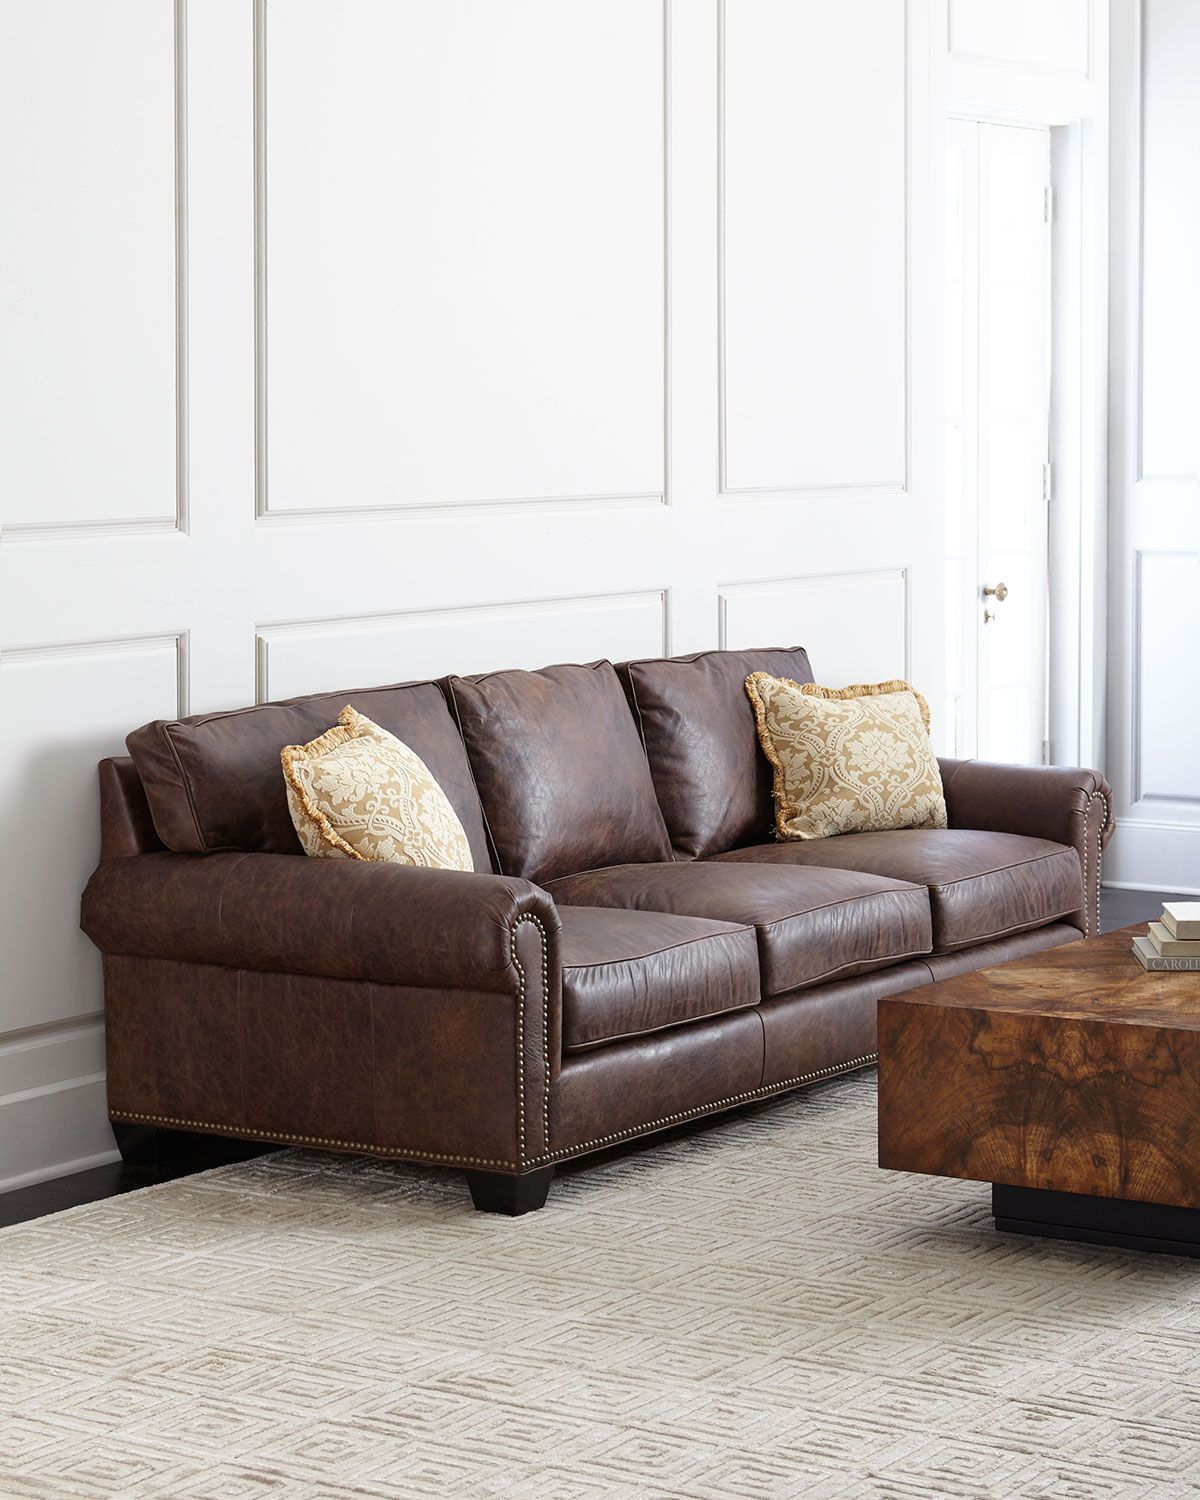 Massey Leather Sofa Brown Leather  Neiman Marcus  *furniture Interesting Brown Sofas In Living Rooms Decorating Design